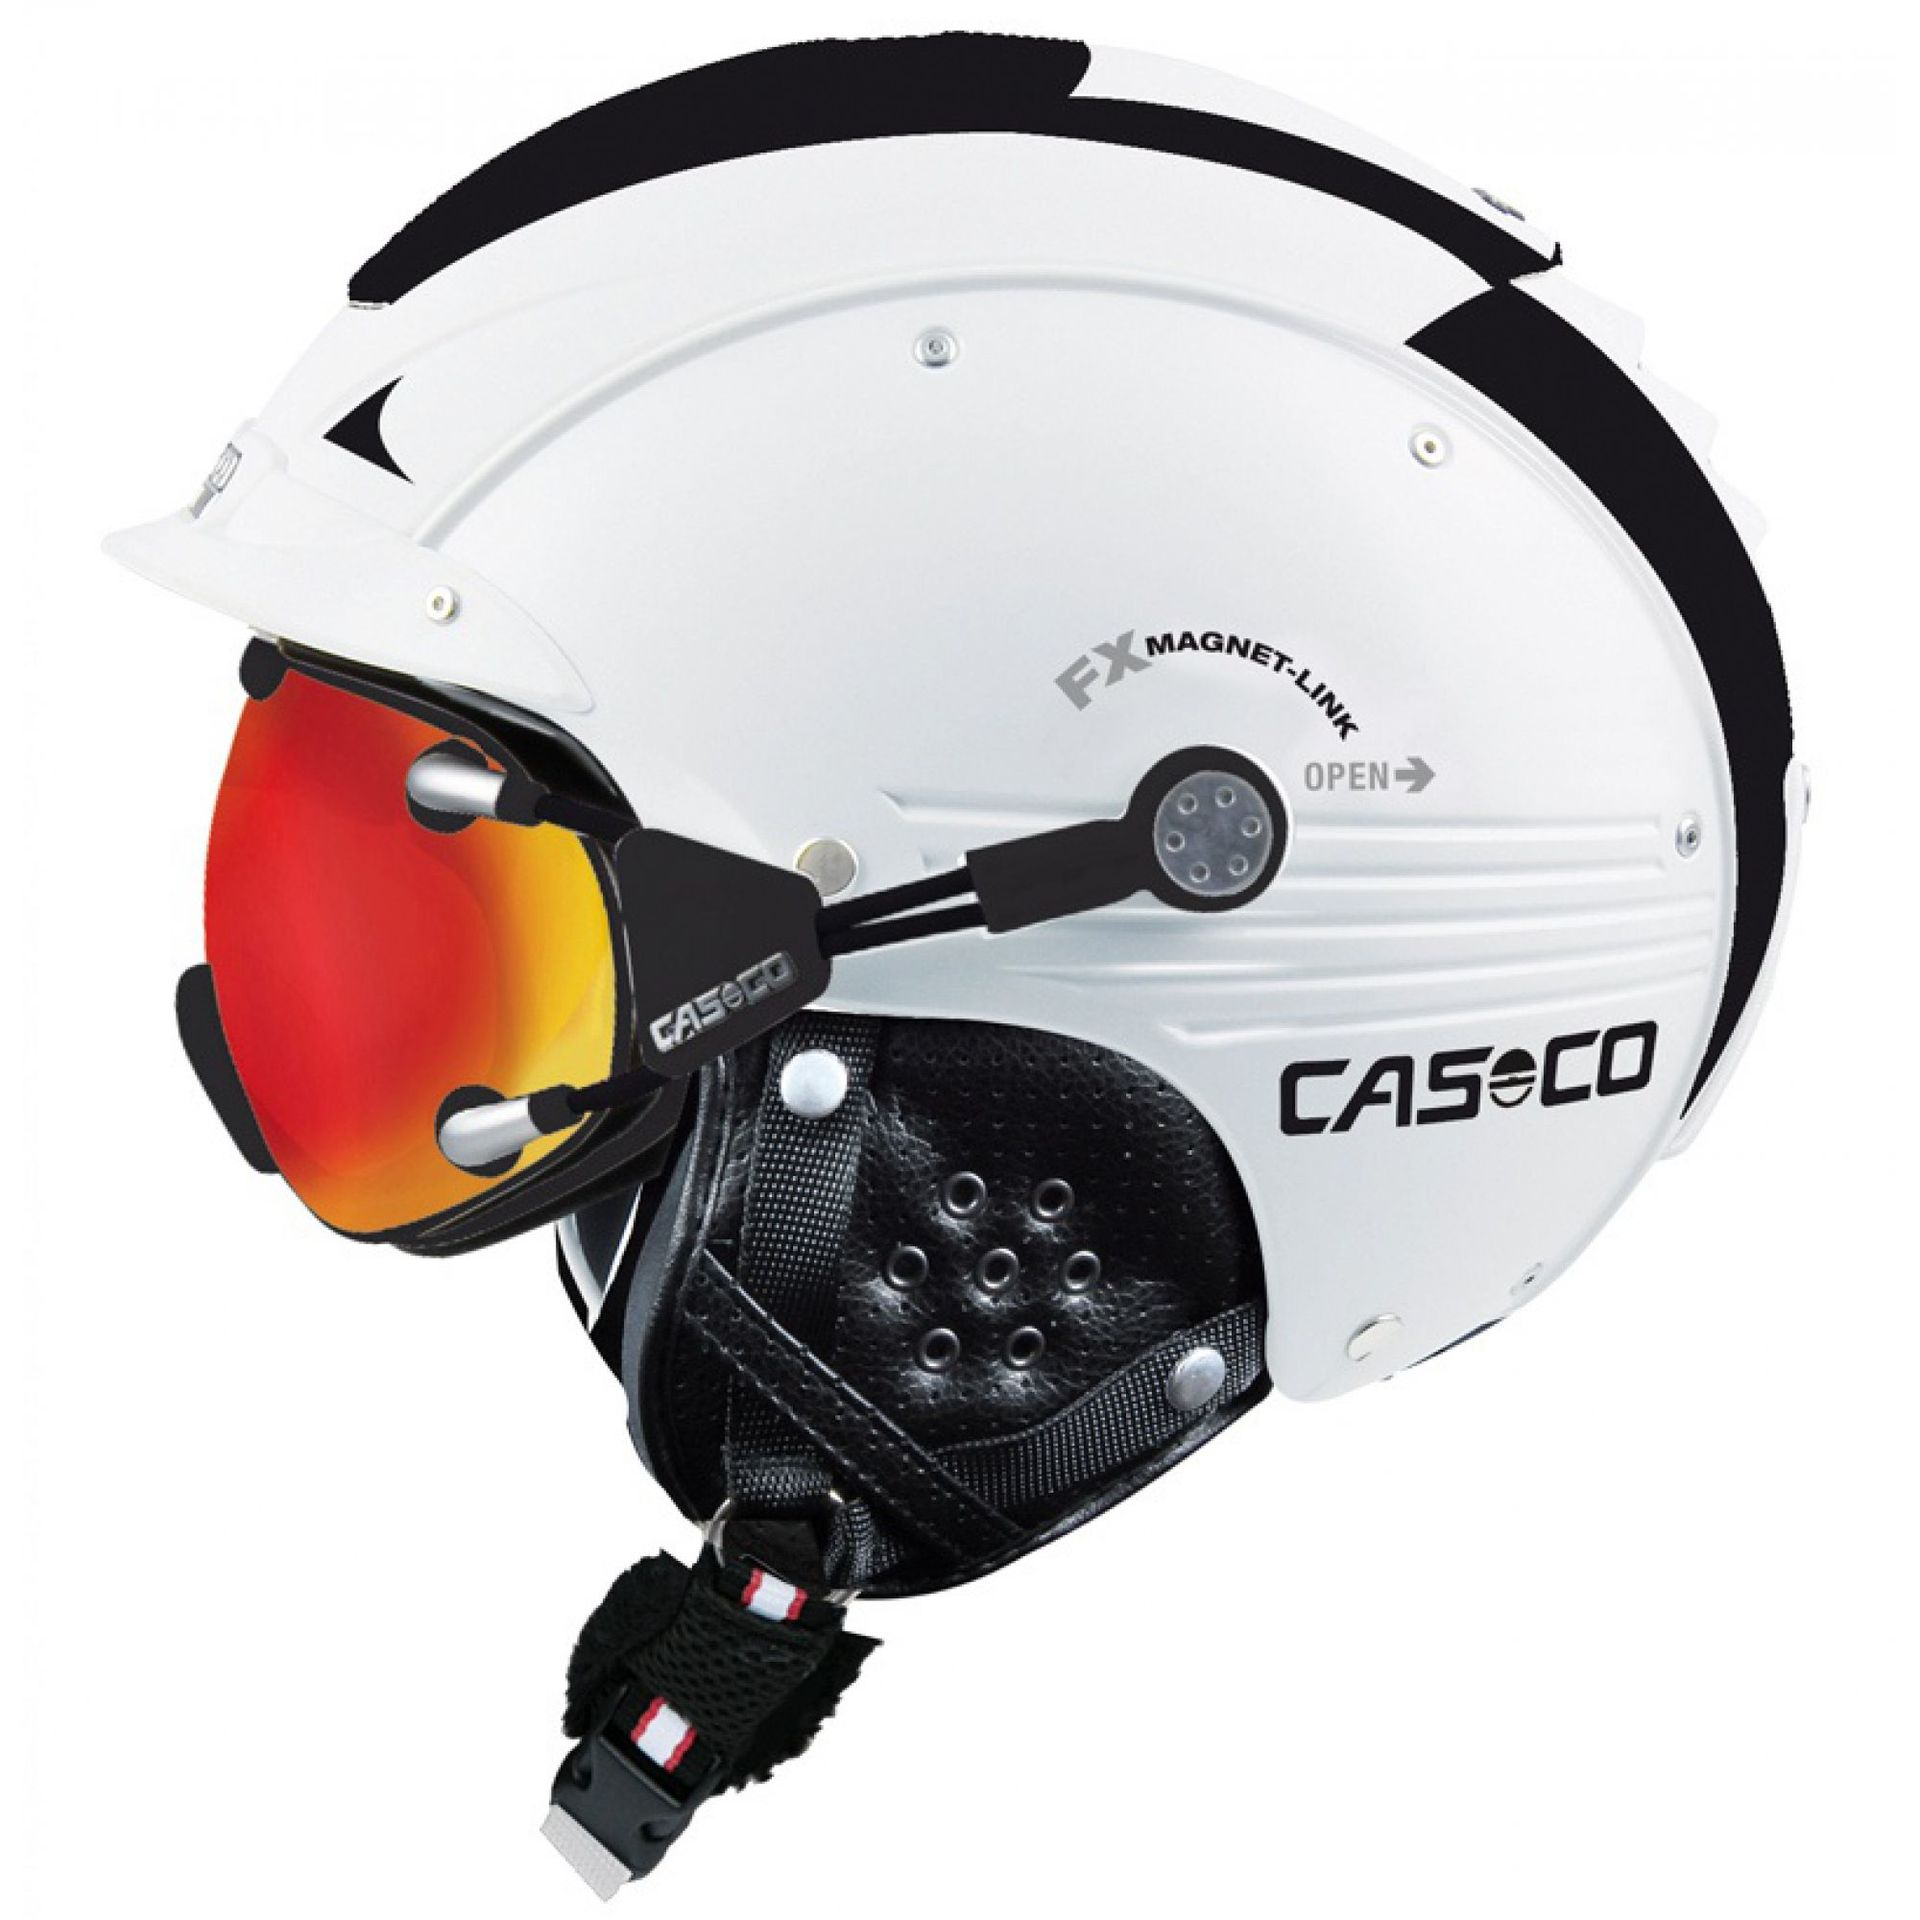 KASK CASCO SP-5 3207 1